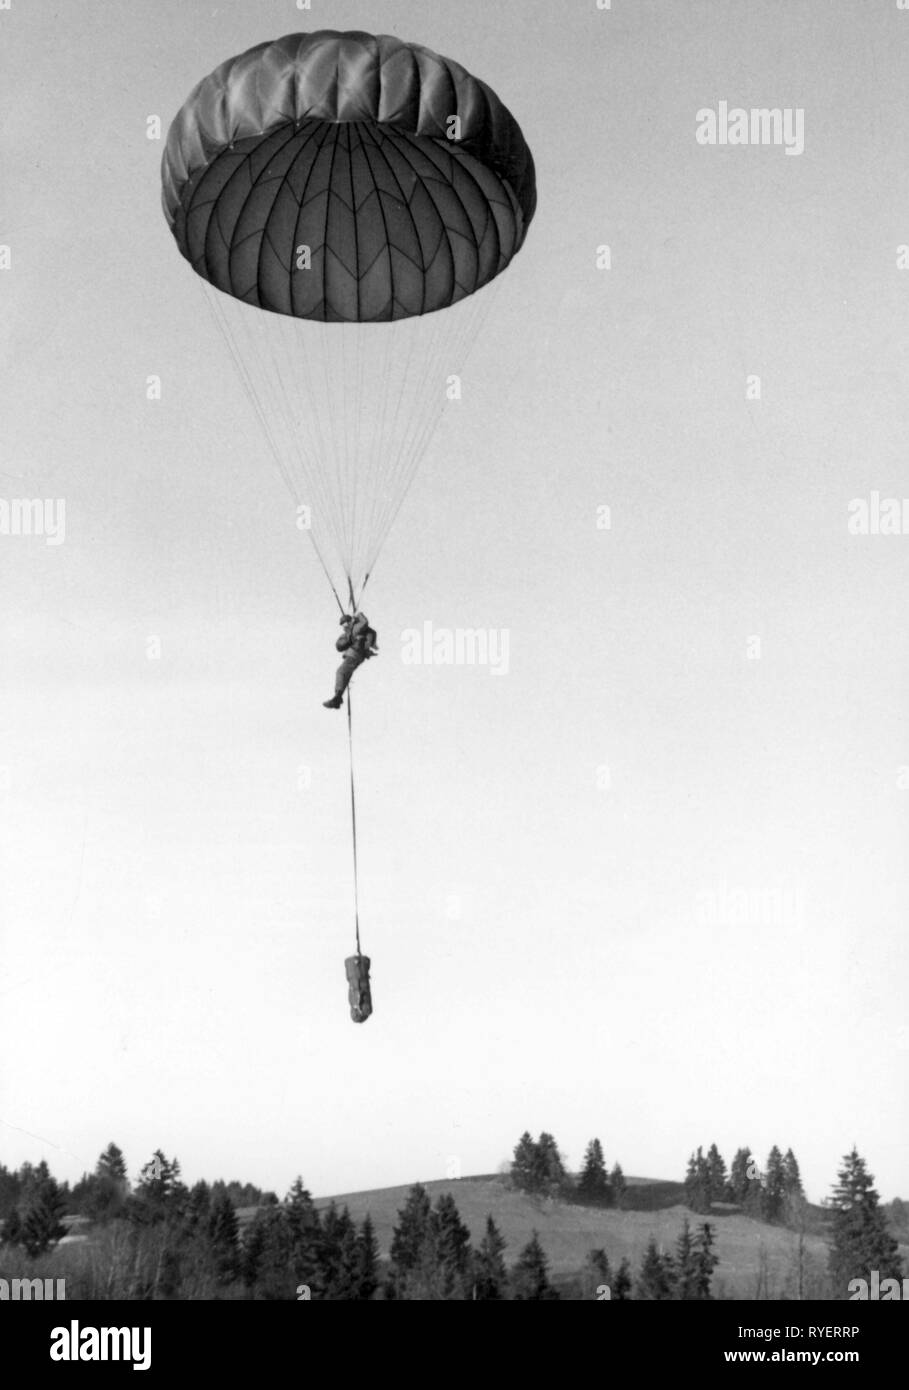 military, Germany, Federal Armed Forces, army, Airborne forces, paratrooper shortly before the landing, probably in the vicinity of the airborne school in Altenstadt, Upper Bavaria, 1960s, Additional-Rights-Clearance-Info-Not-Available - Stock Image